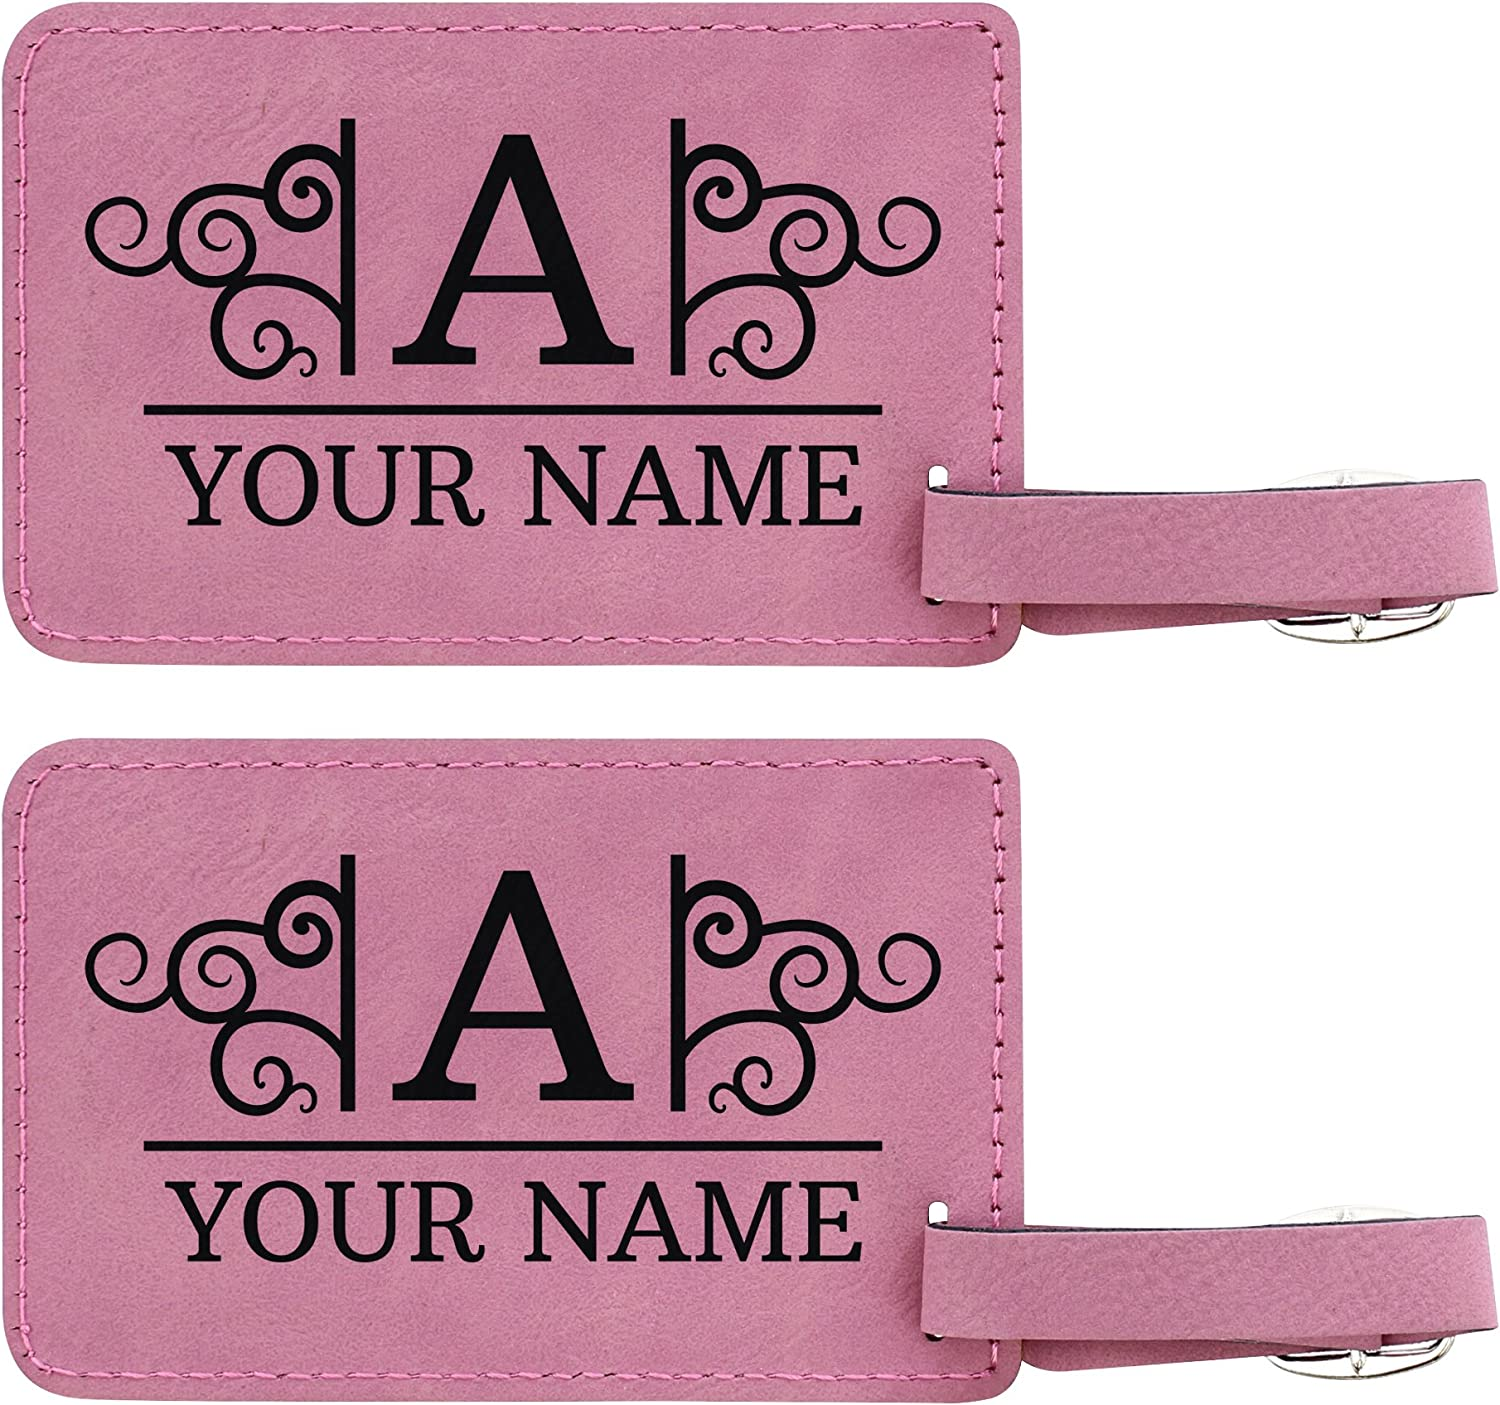 Personalized Luggage Tags Custom Initial /& Name Personalized Gifts for Travelers Personalized 2-pack Laser Engraved Leatherette Luggage Tags Black